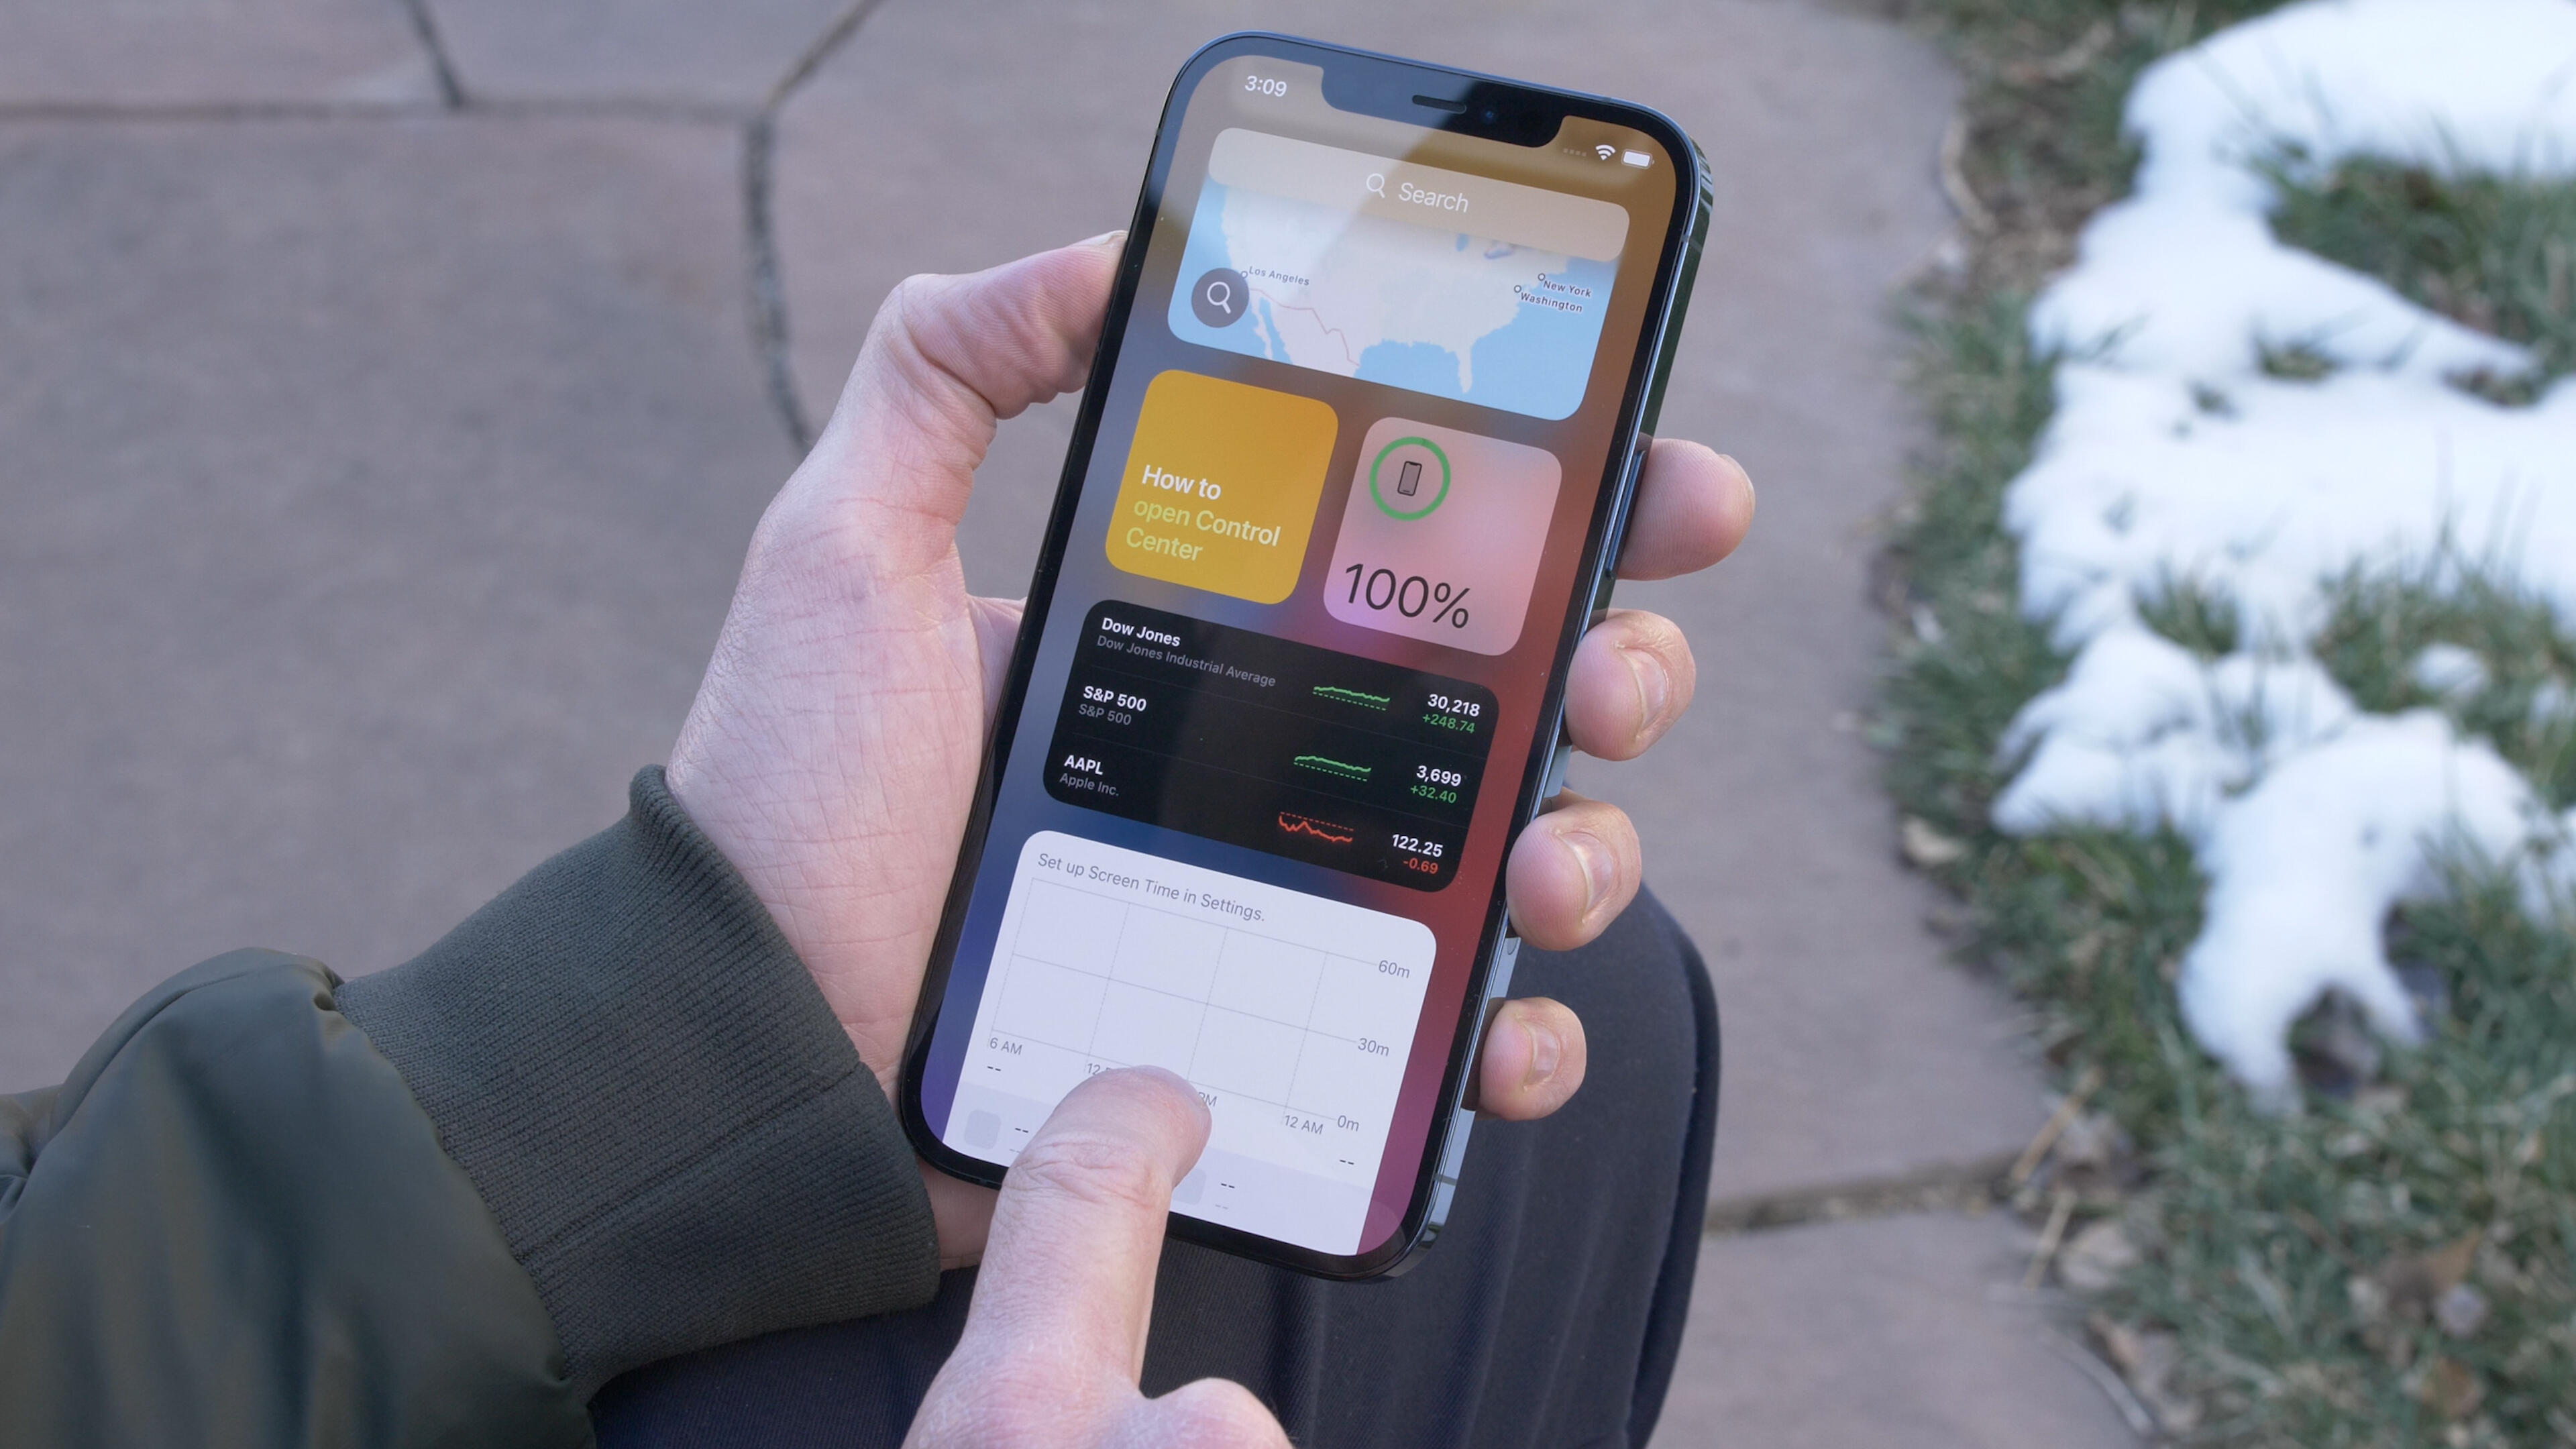 Video: iPhone 12 Pro Max: Diving in on a single charge